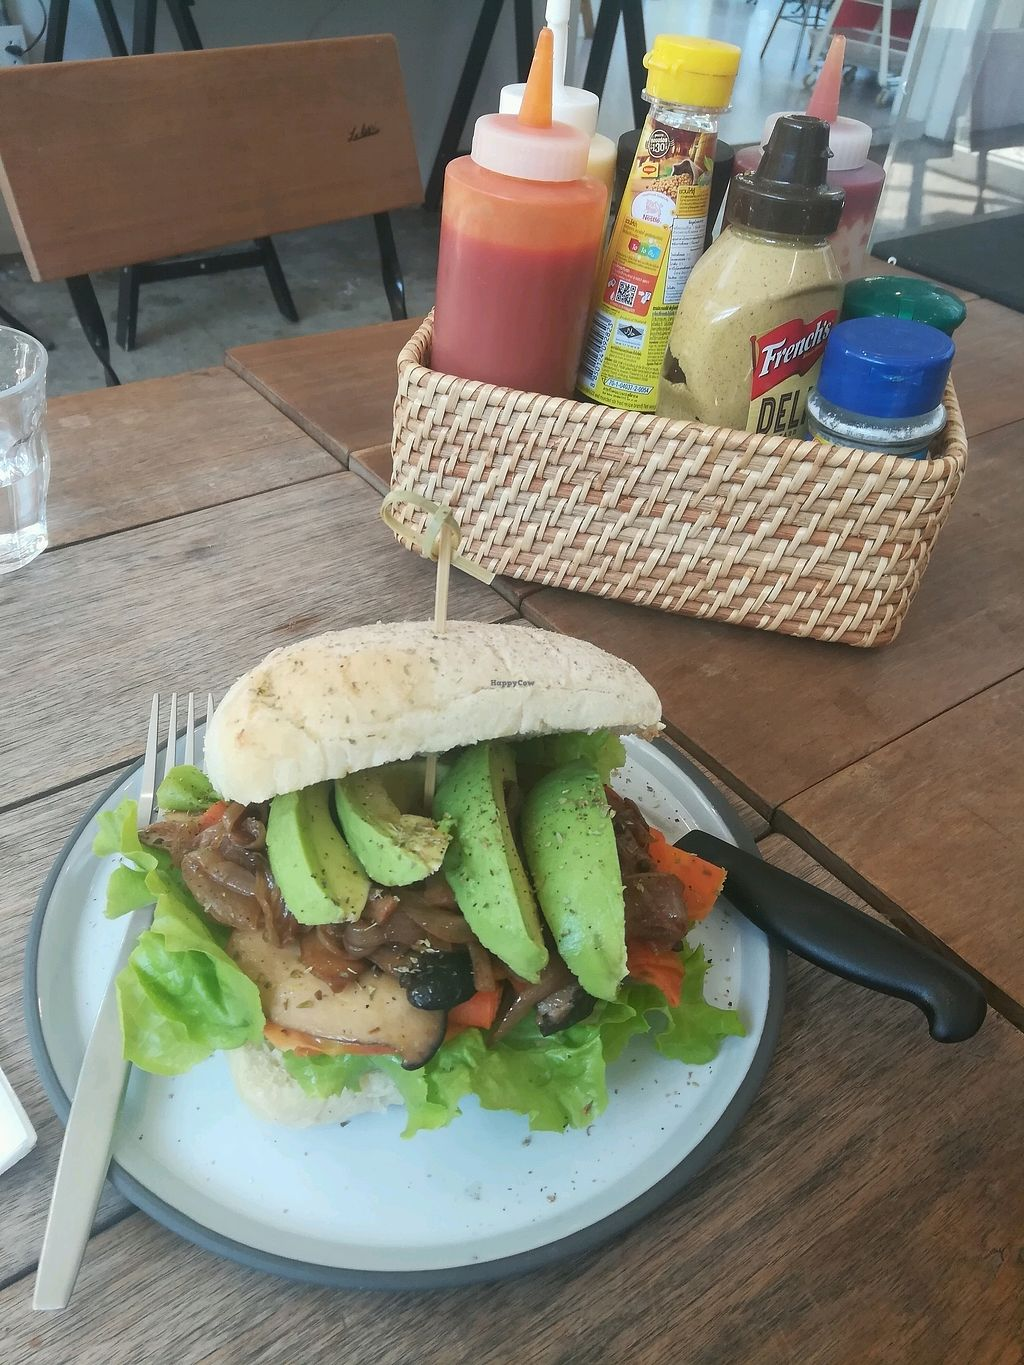 "Photo of CLOSED: Lilou Cafe  by <a href=""/members/profile/LauraJean"">LauraJean</a> <br/>avo veg sandwich <br/> January 19, 2018  - <a href='/contact/abuse/image/85549/348213'>Report</a>"